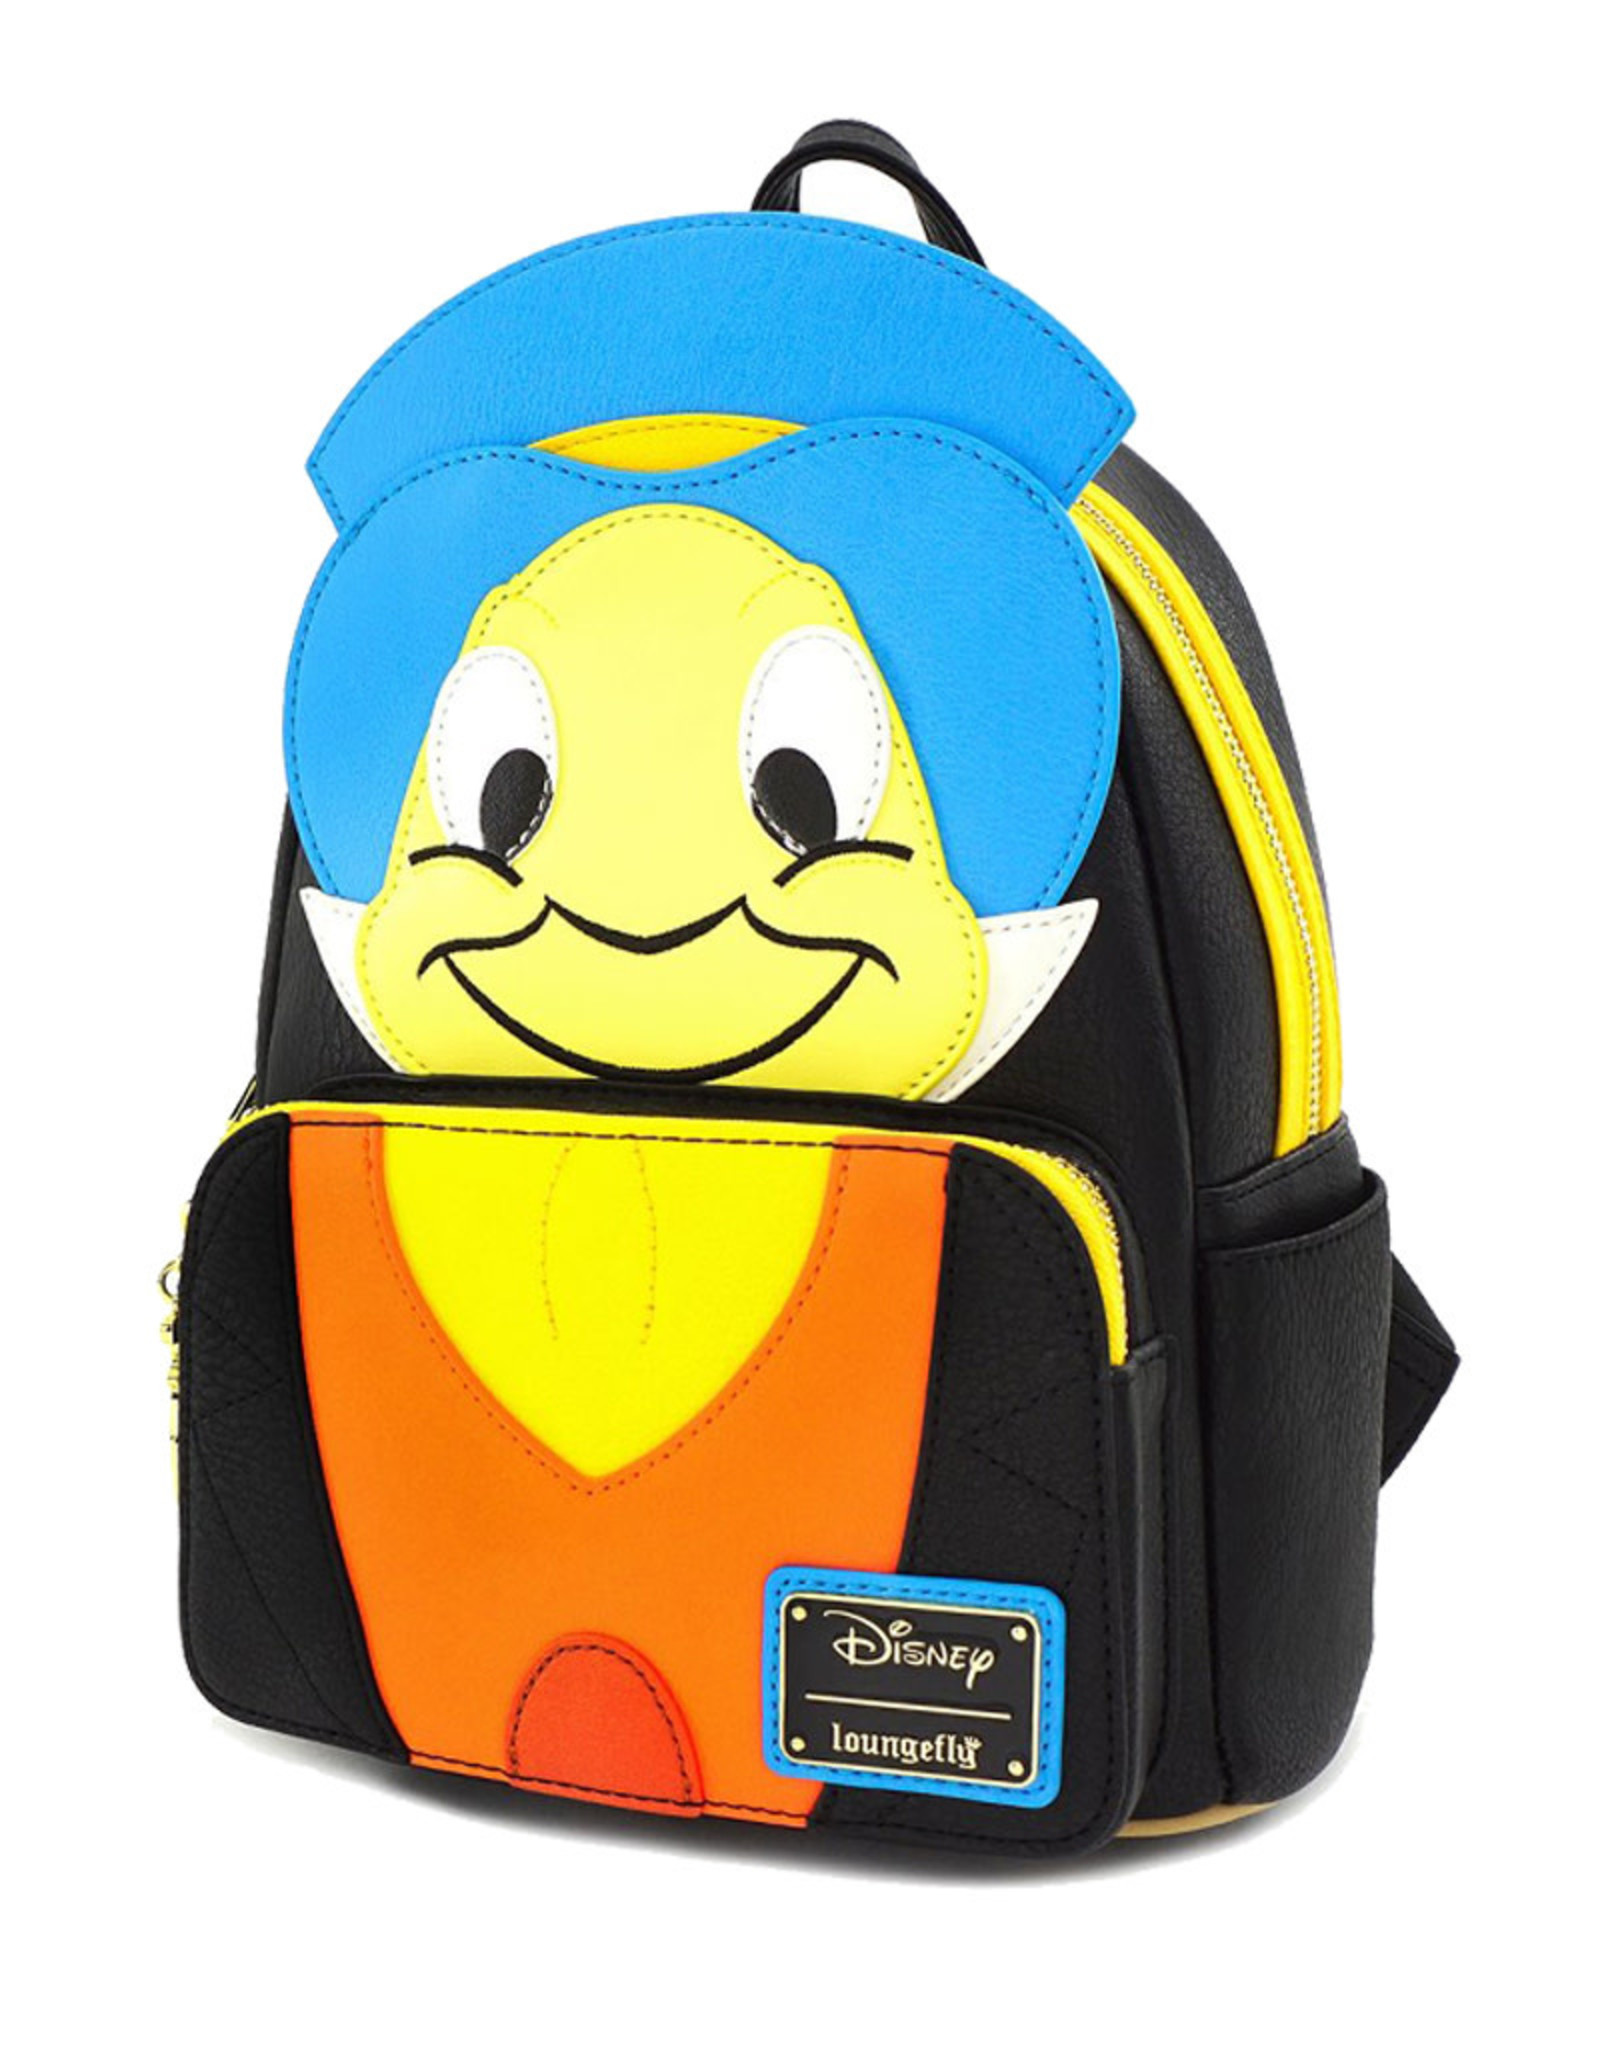 Disney Disney ( Loungefly Mini backpack ) Jiminy Cricket